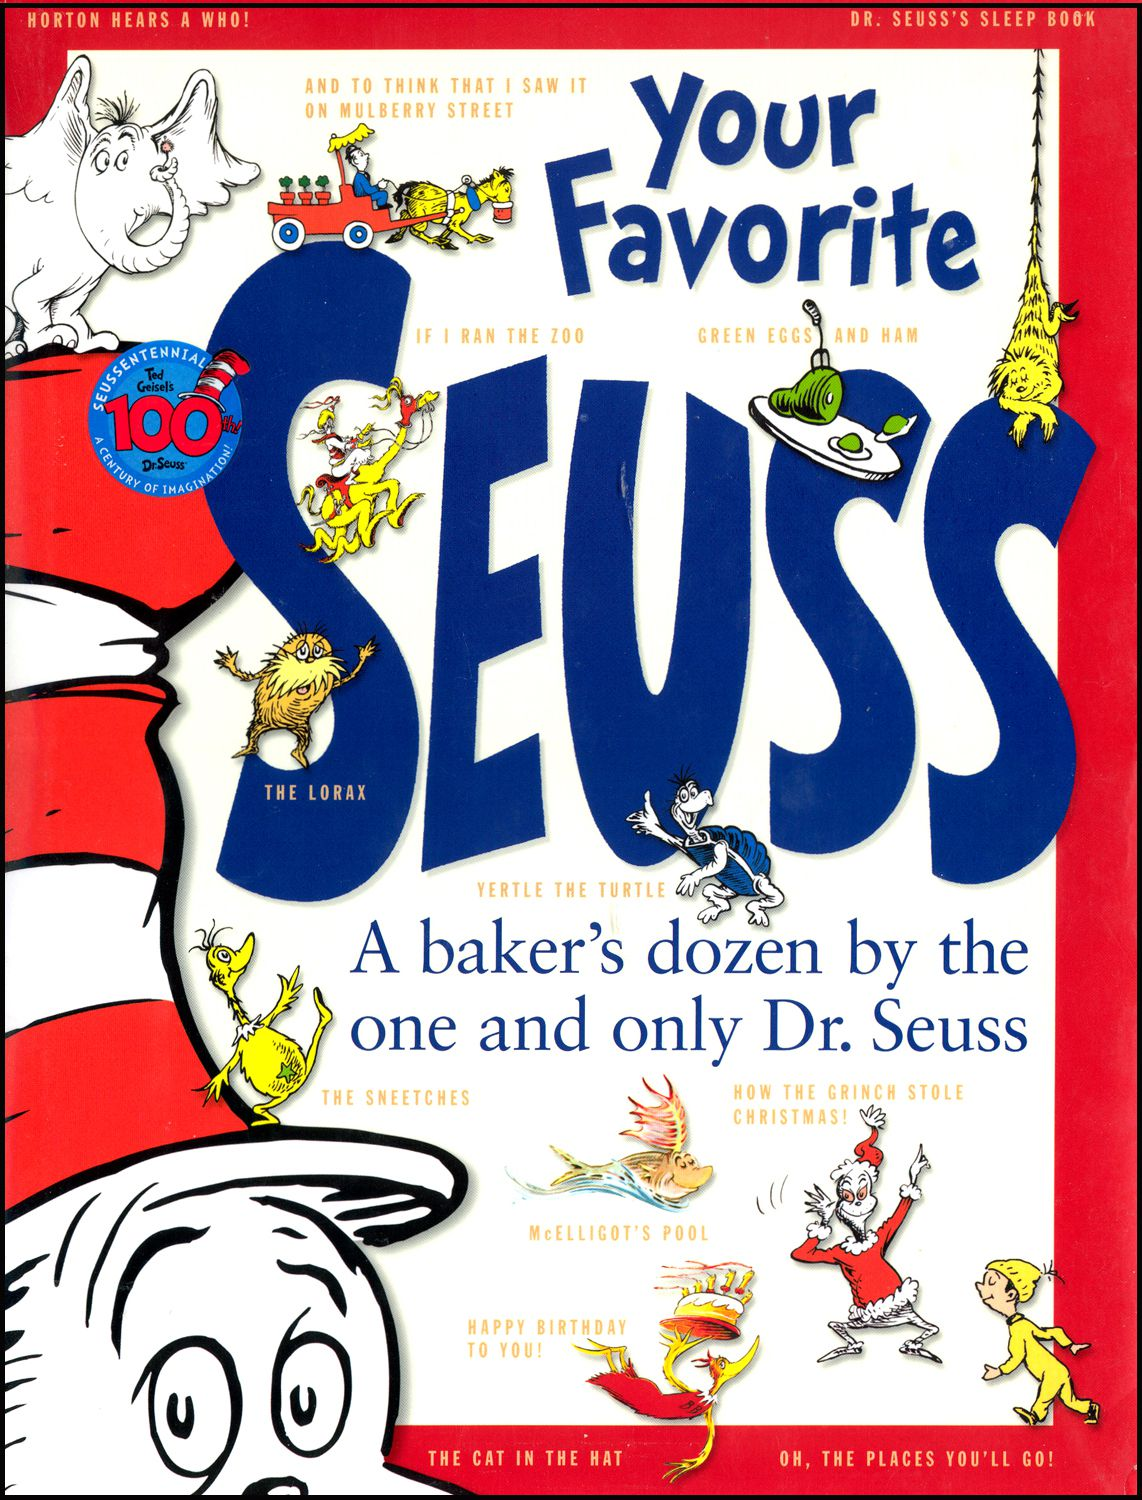 Dr Seuss Biography